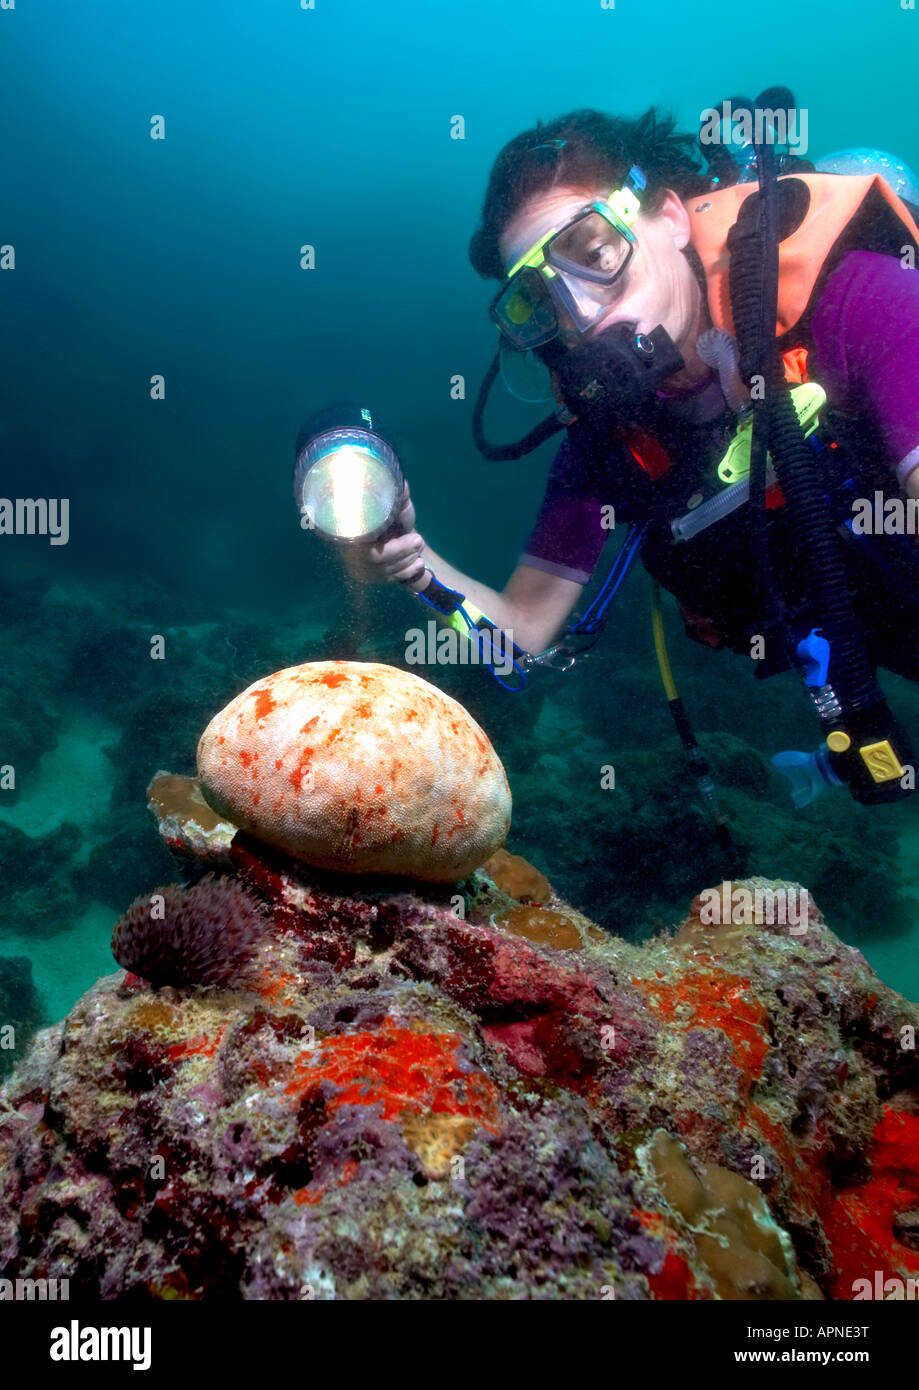 A diver shines her torch on a blotchy Cushion Starfish in the Gulf Of Tadjoura near Djibouti. Stock Photo